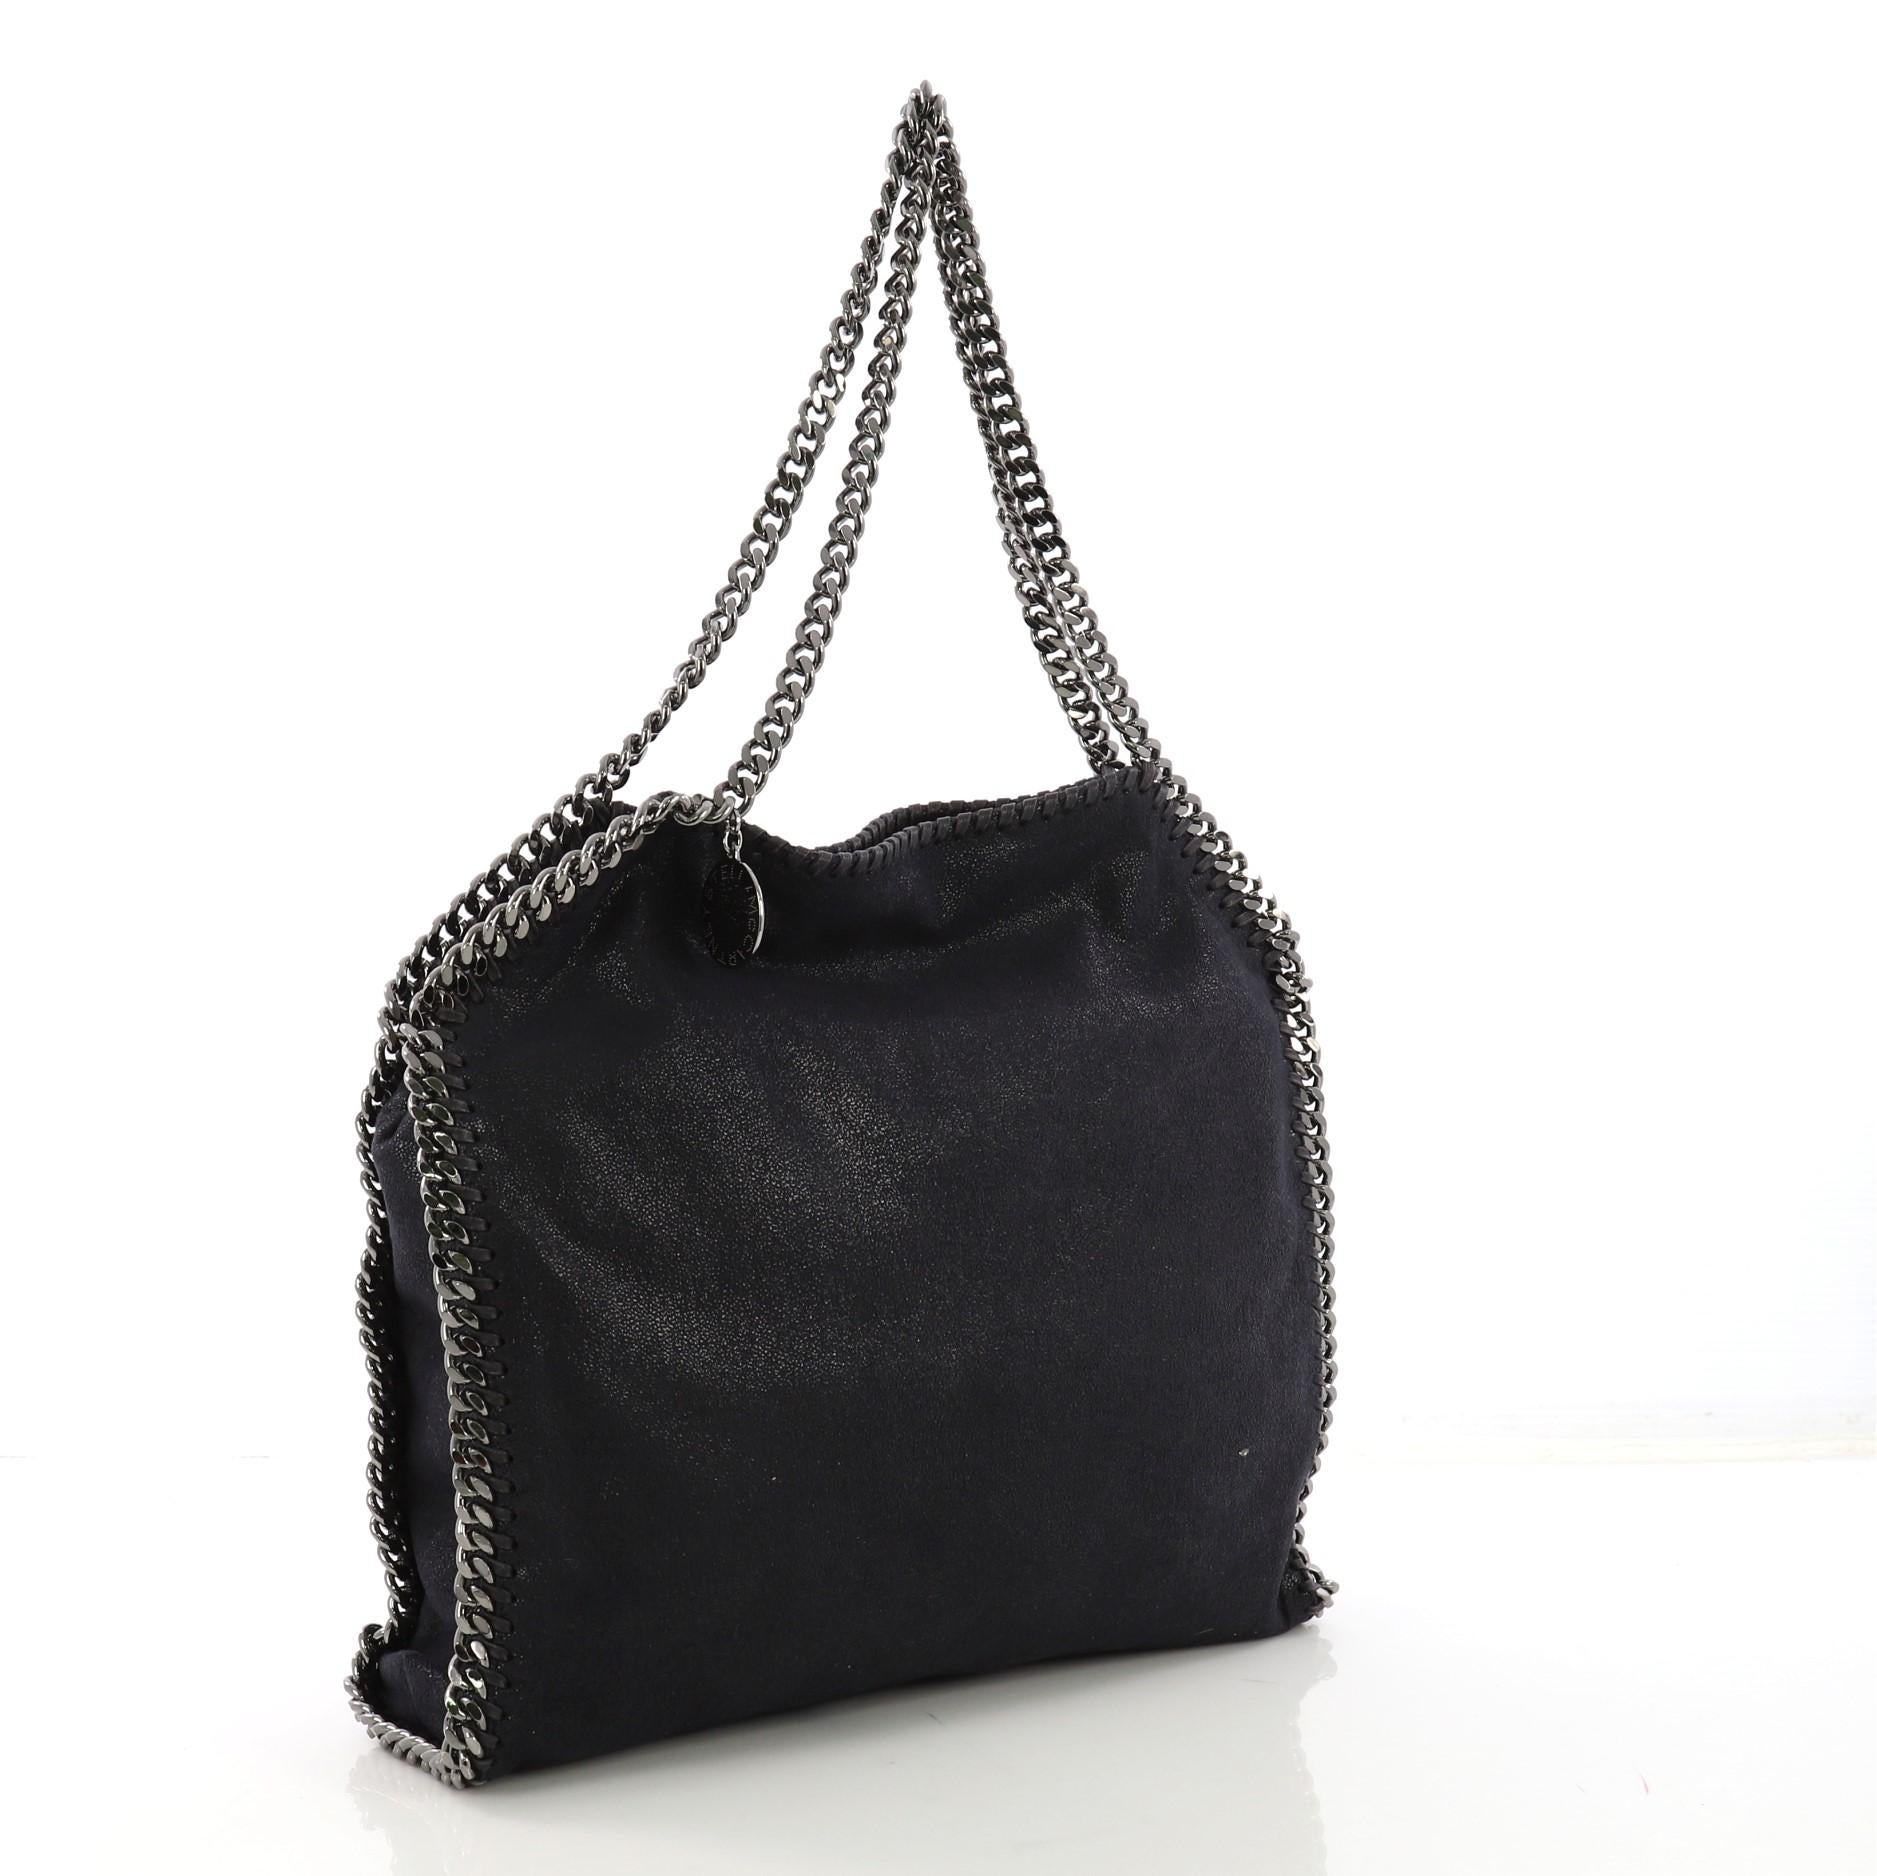 dd75c1d1567d Stella McCartney Falabella Tote Shaggy Deer Small For Sale at 1stdibs